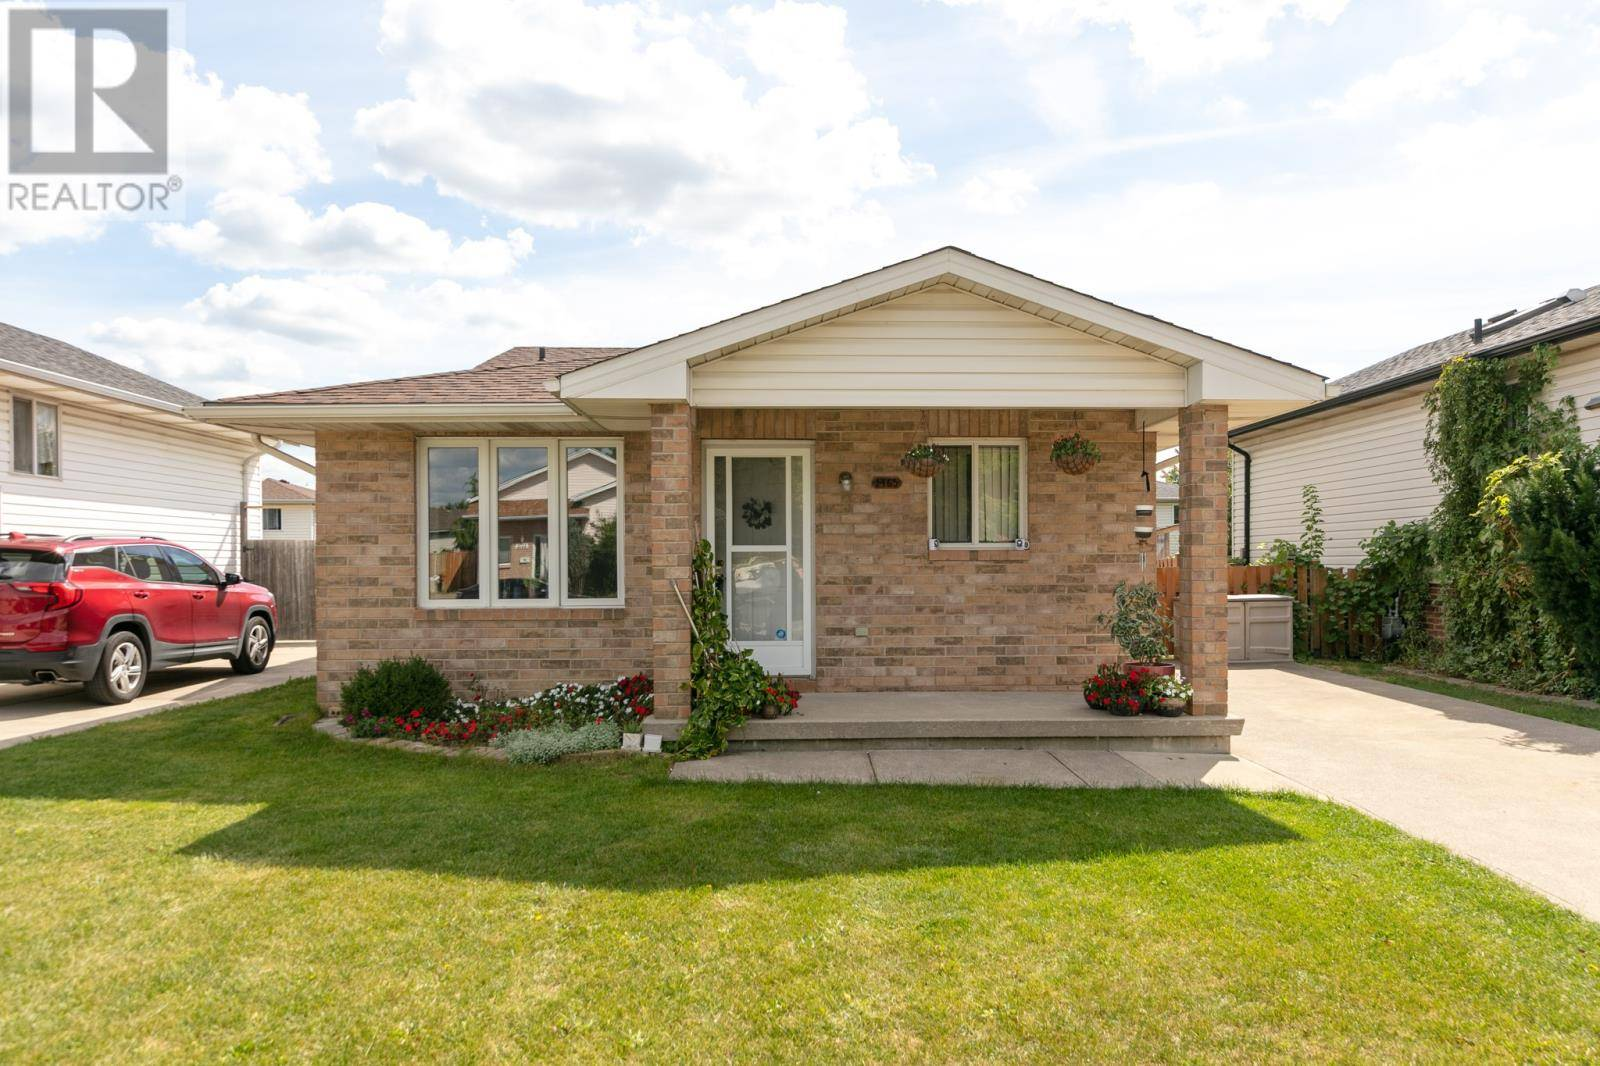 House for sale at 1465 Foster  Windsor Ontario - MLS: 19027035